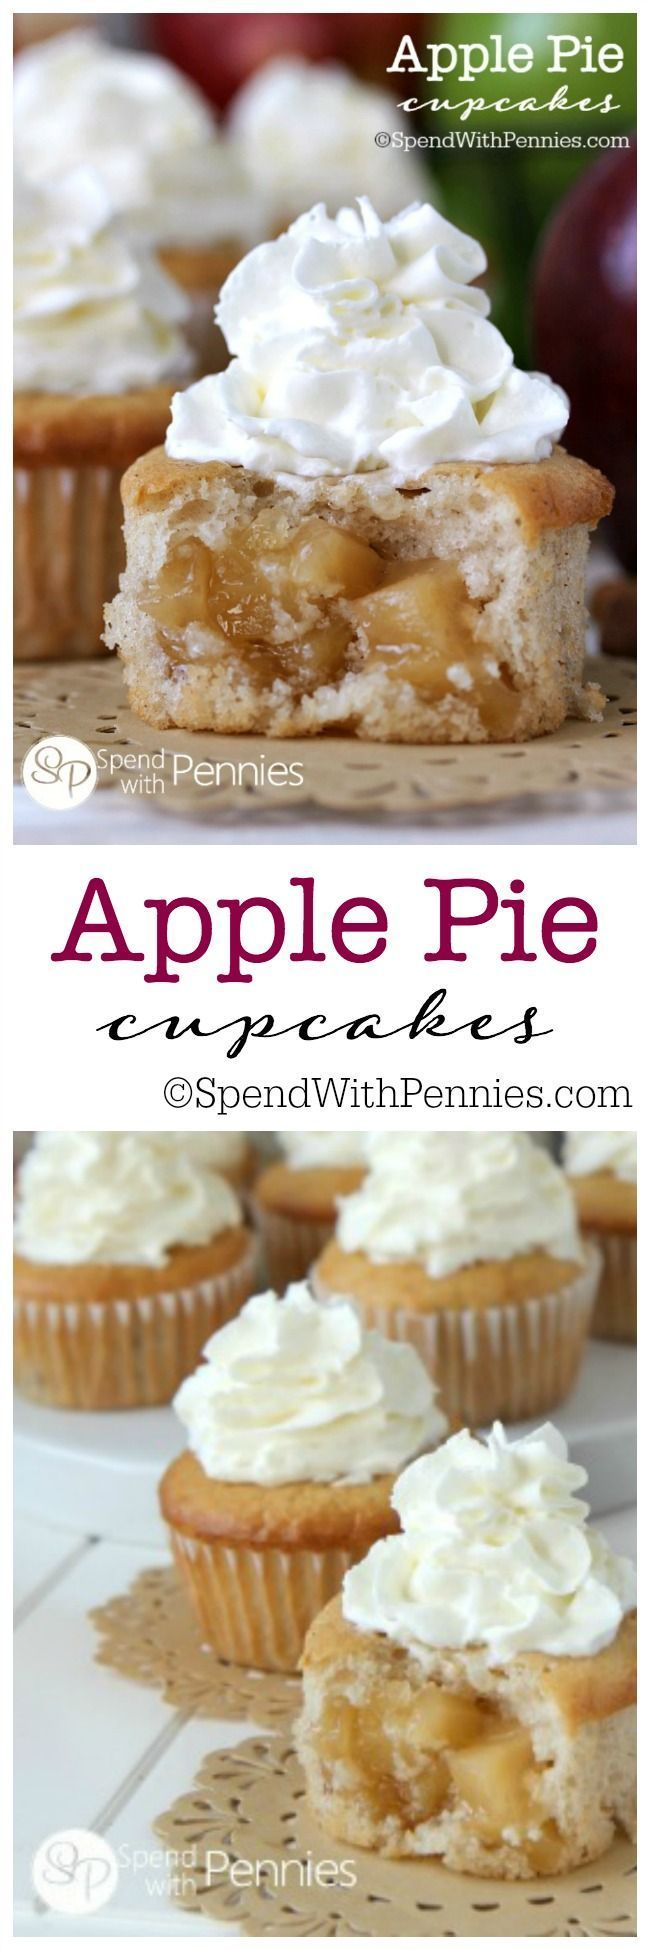 Apple Pie Cupcakes!! Our favorite cupcakes ever! Soft fluffy cinnamon cupcakes with a surprise apple pie filling in the center! These are SO easy to make!)